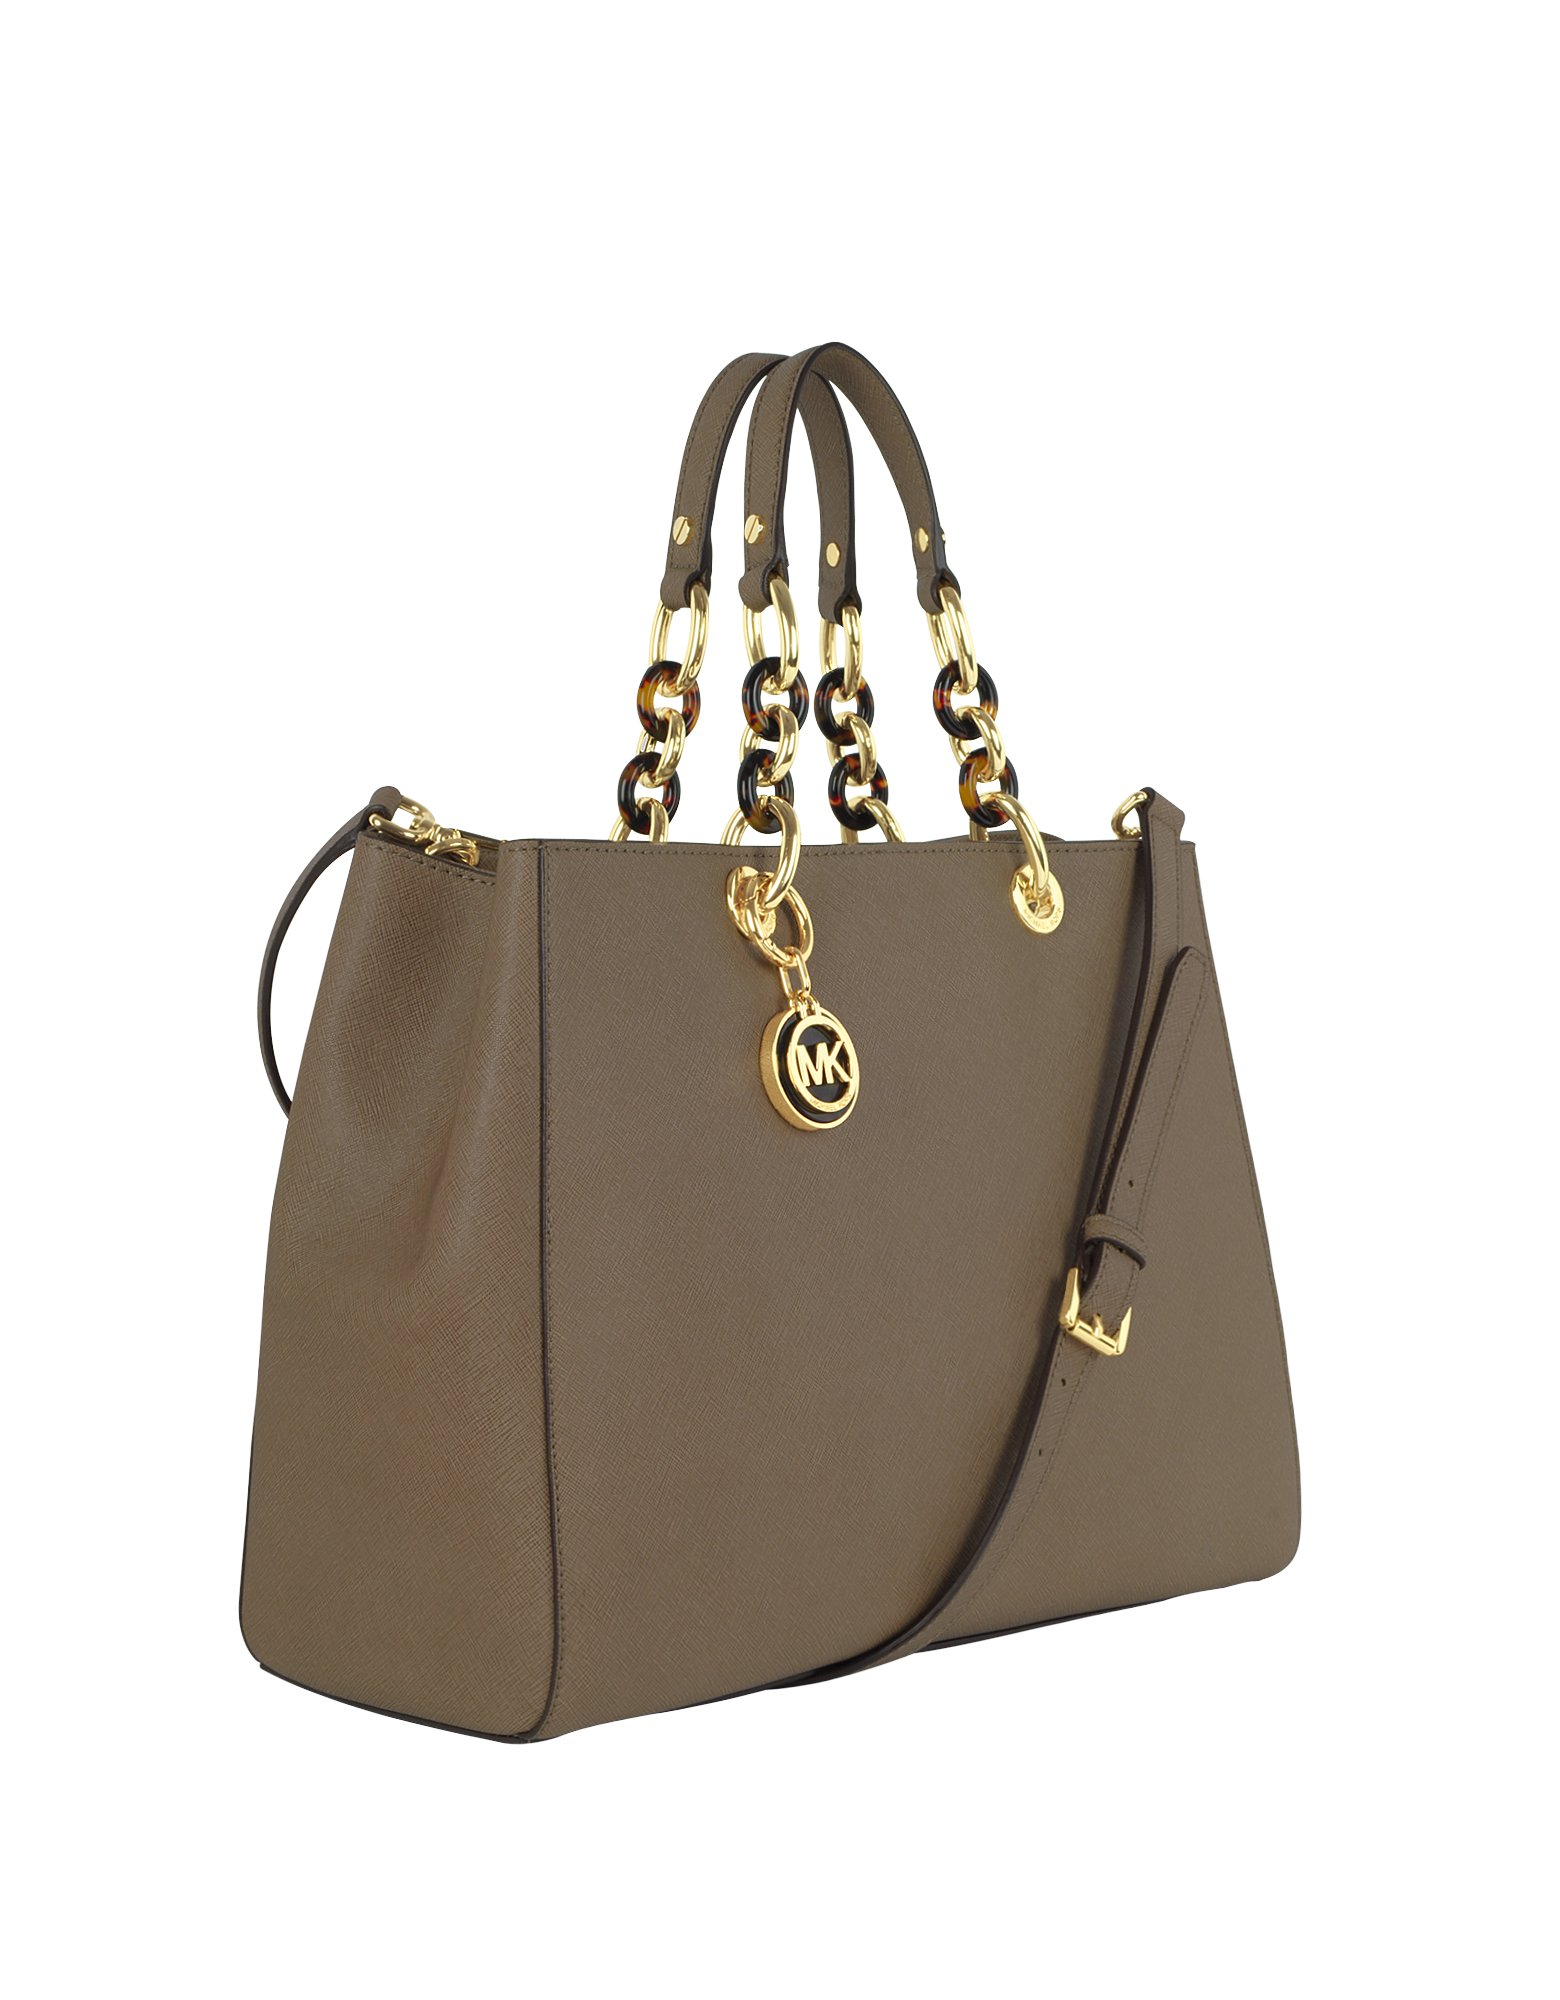 f1b55904fc2 Michael Kors Cynthia Saffiano Leather Large Satchel in Brown - Lyst